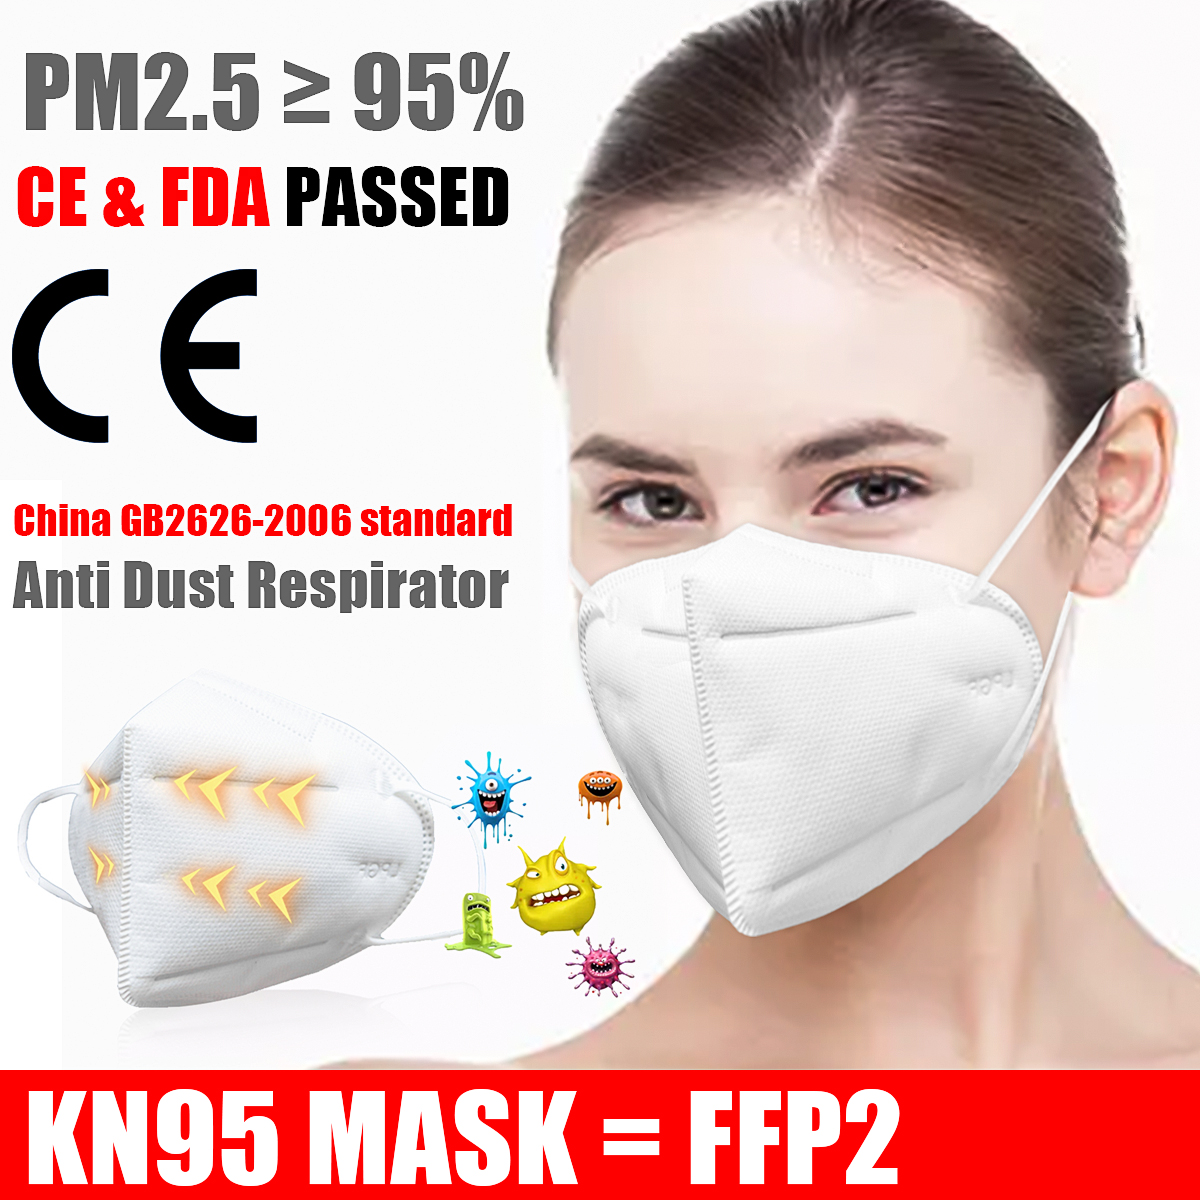 5 Layers Thicken Mask N95 For Germ Protection Mouth Face Adult Disposable Masks Filter Filtraion Cotton Anti Dust Pm2.5 Bacteria